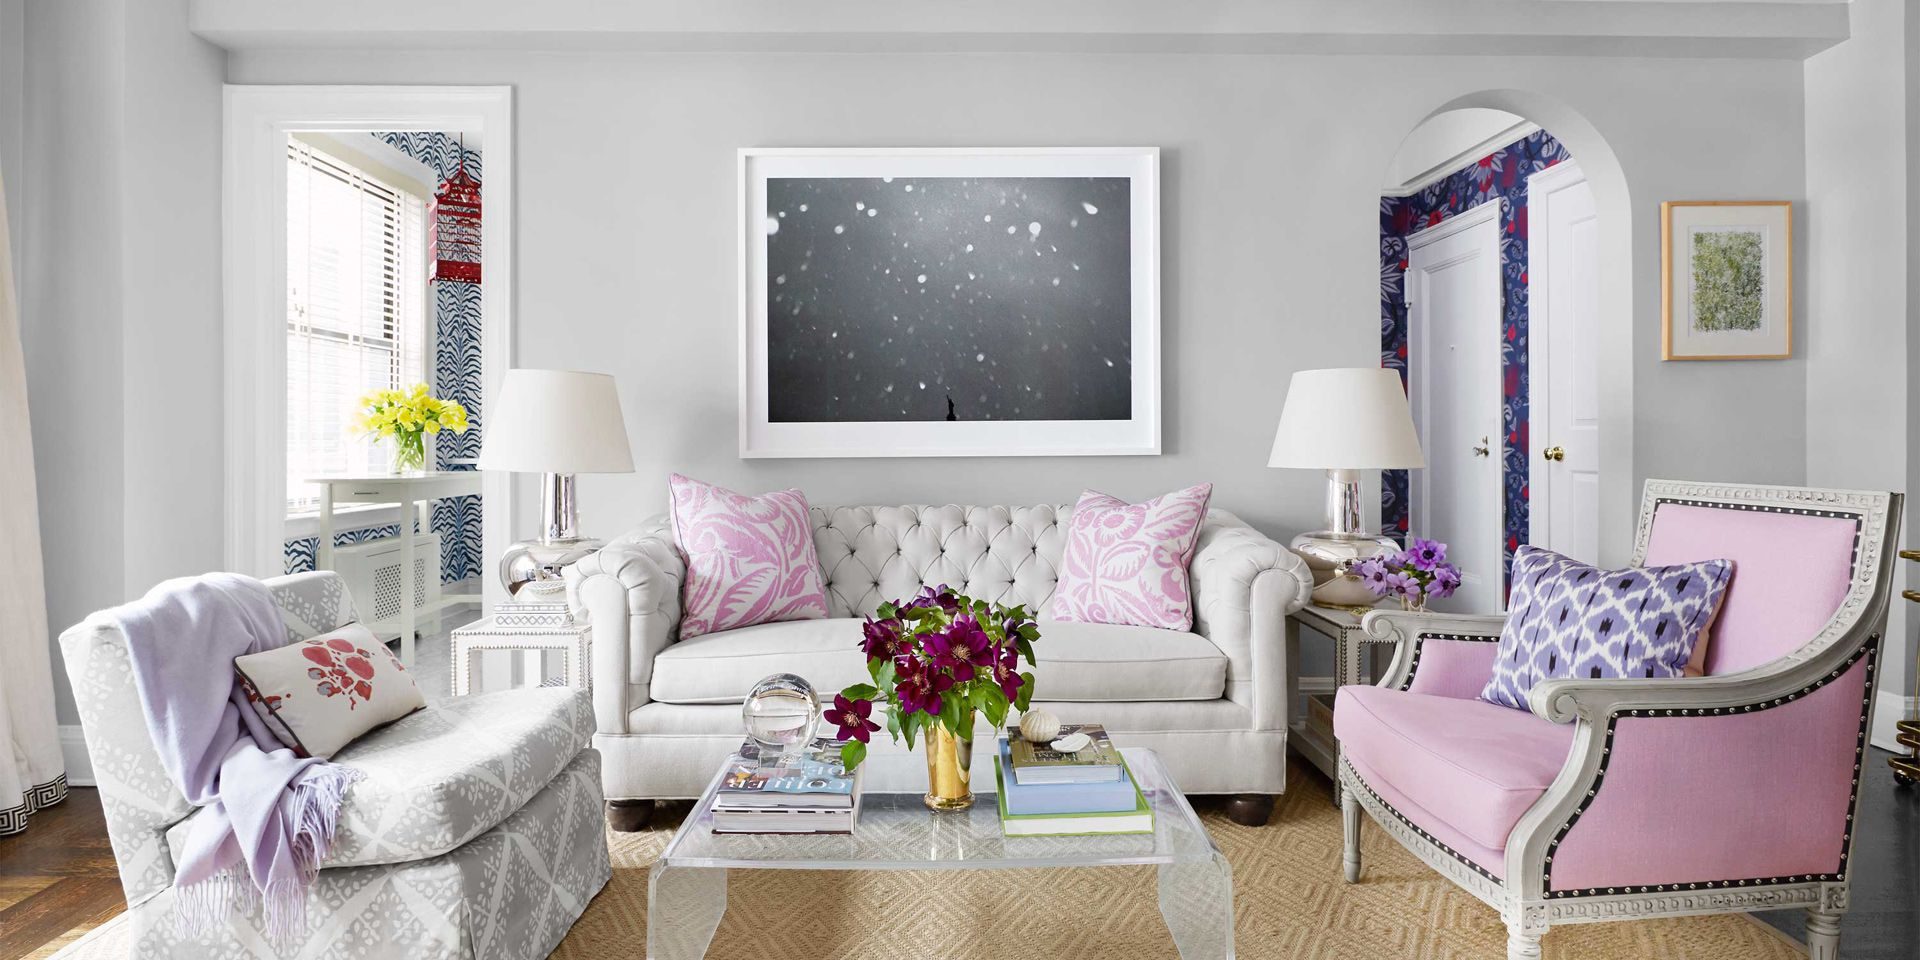 22 Easy Ways You Can Make Over A Room In A Day